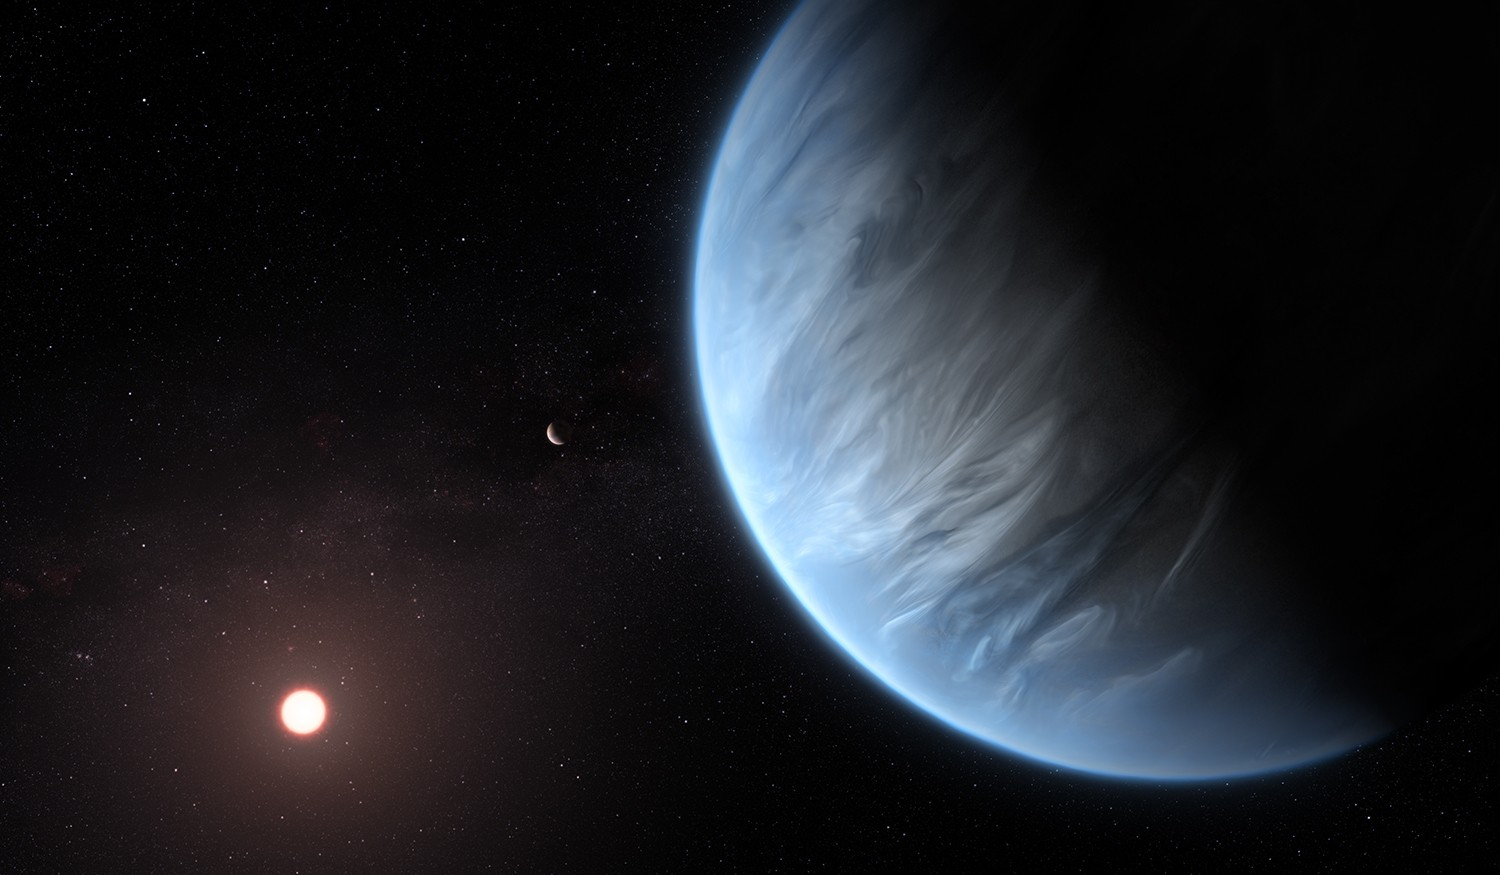 An artist's impression showing exoplanet K2-18b, its host star and an accompanying planet in this system. Credit: ESA/Hubble, M. Kornmesser